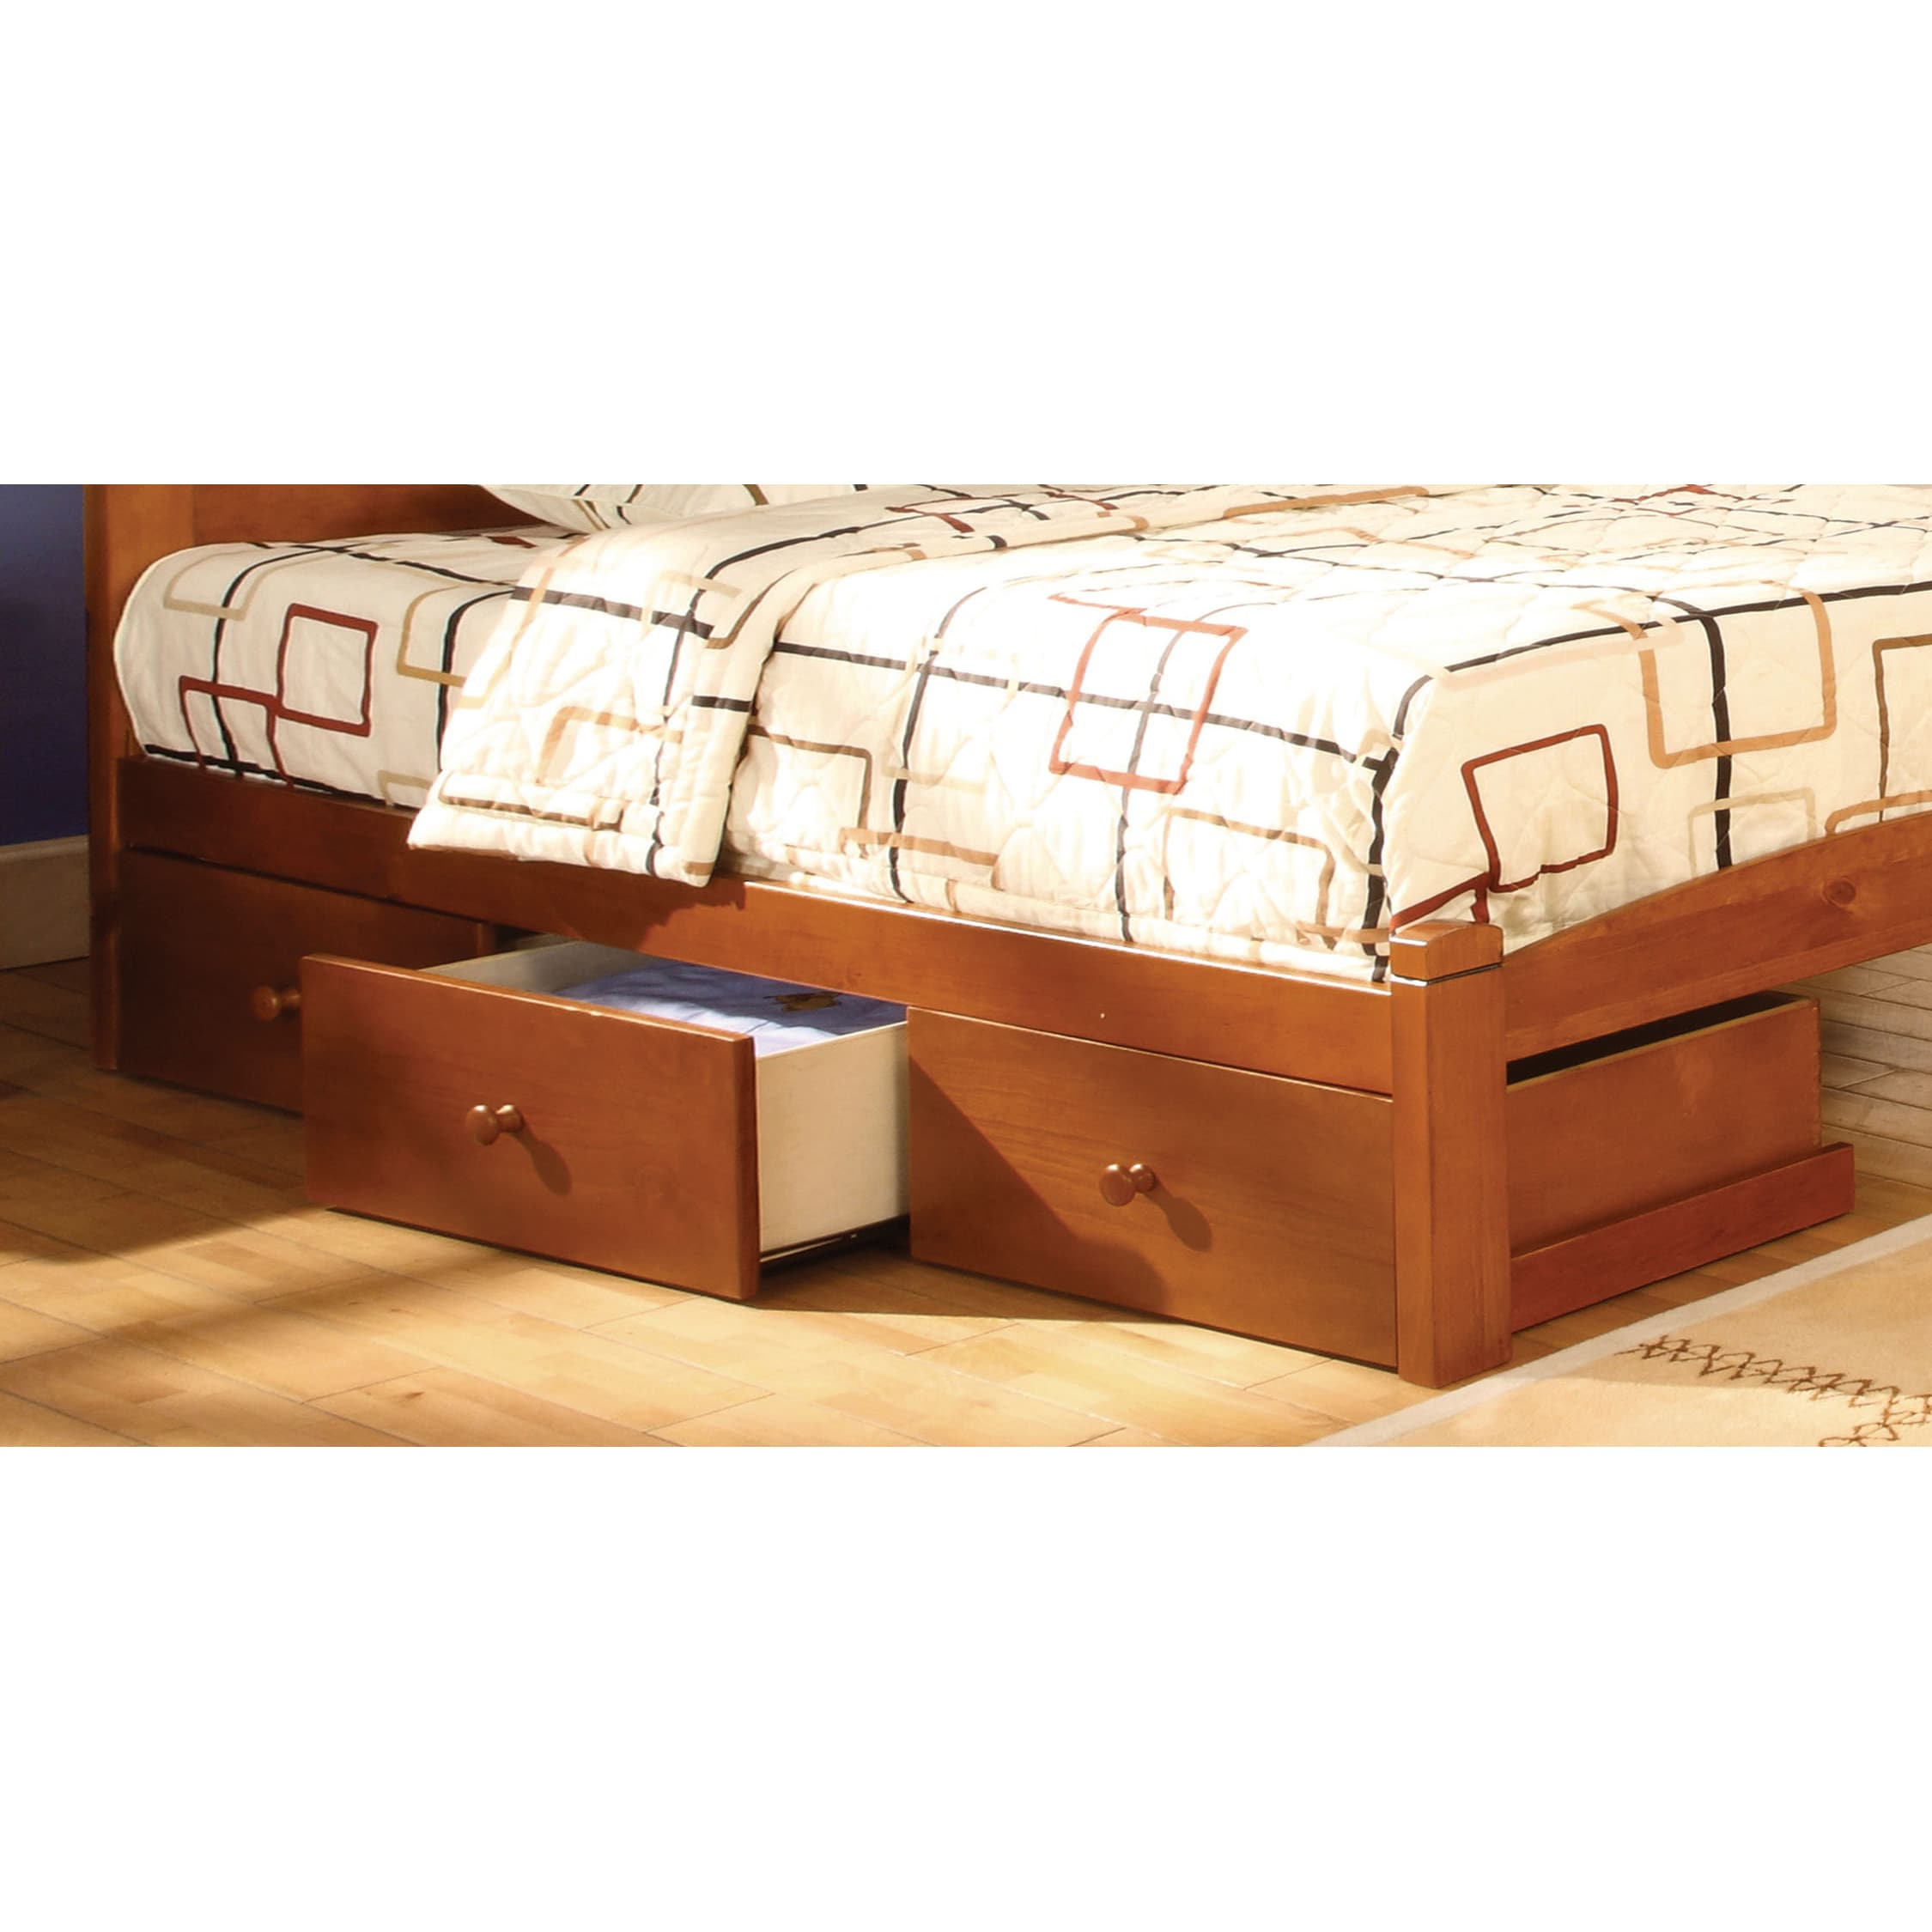 Furniture of America  Ava Underbed Storage Drawers (Set of 3)